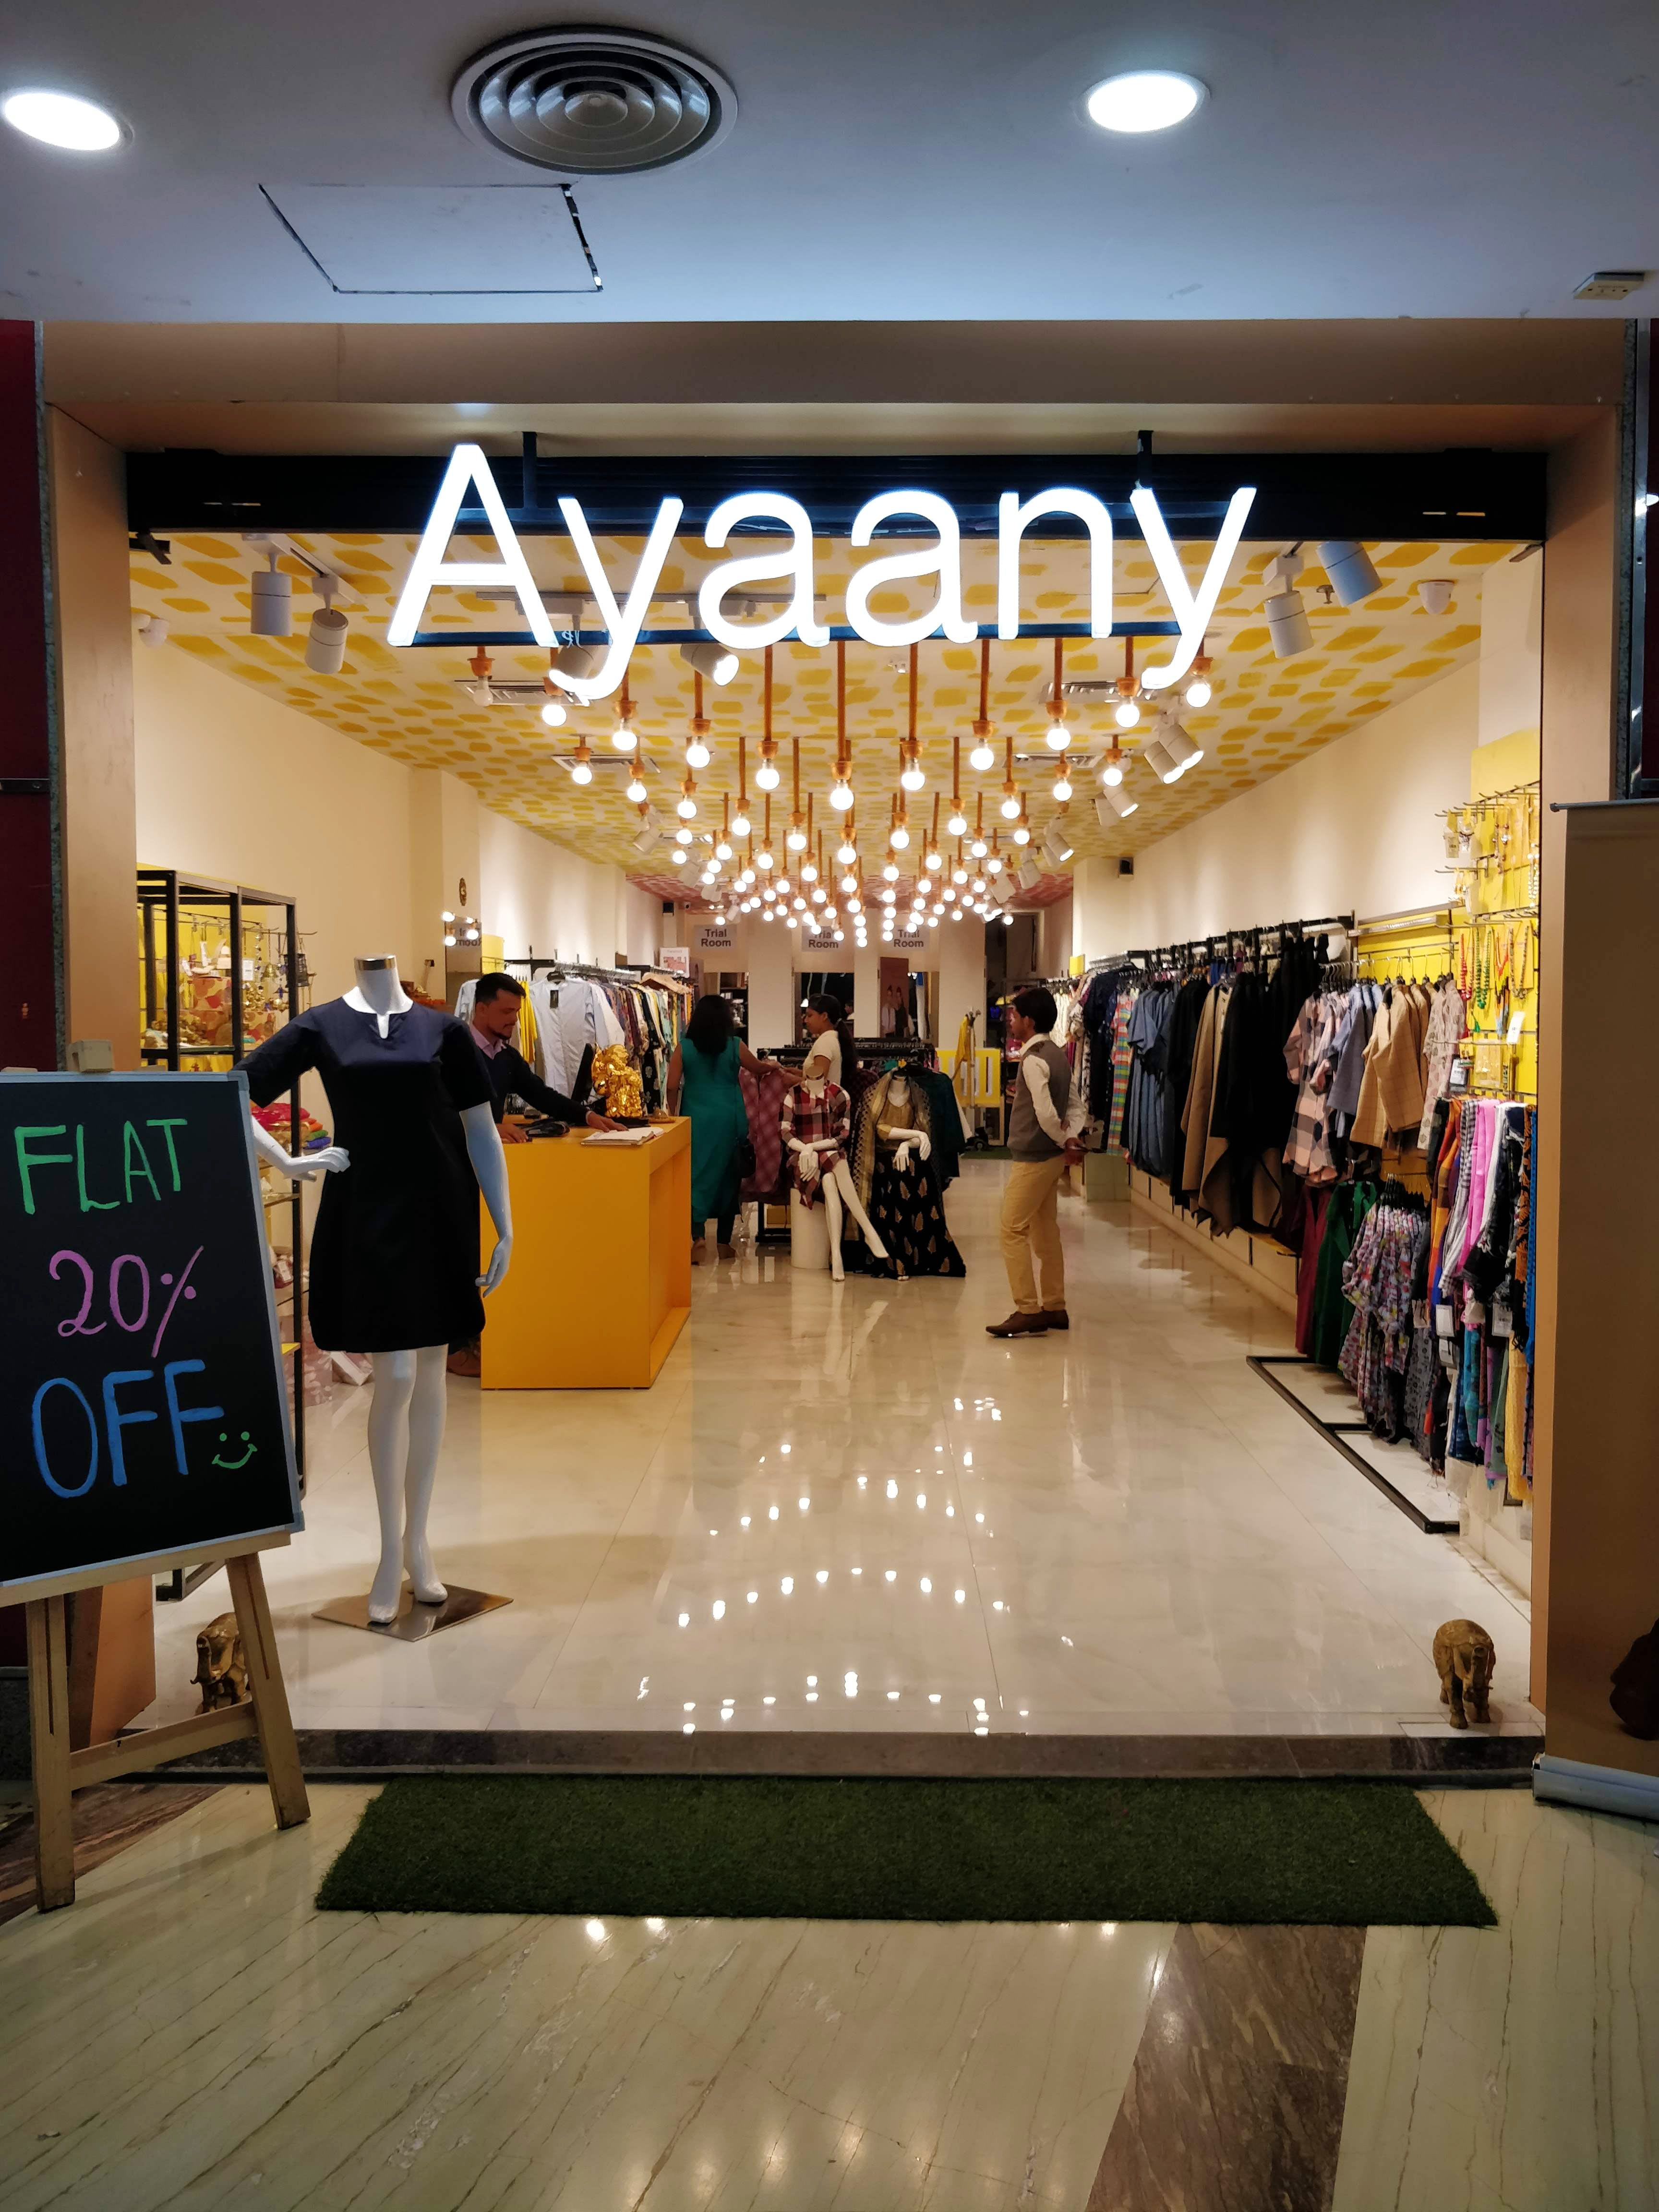 Outlet store,Boutique,Building,Shopping mall,Fashion,Retail,Shopping,Interior design,Lobby,Ceiling